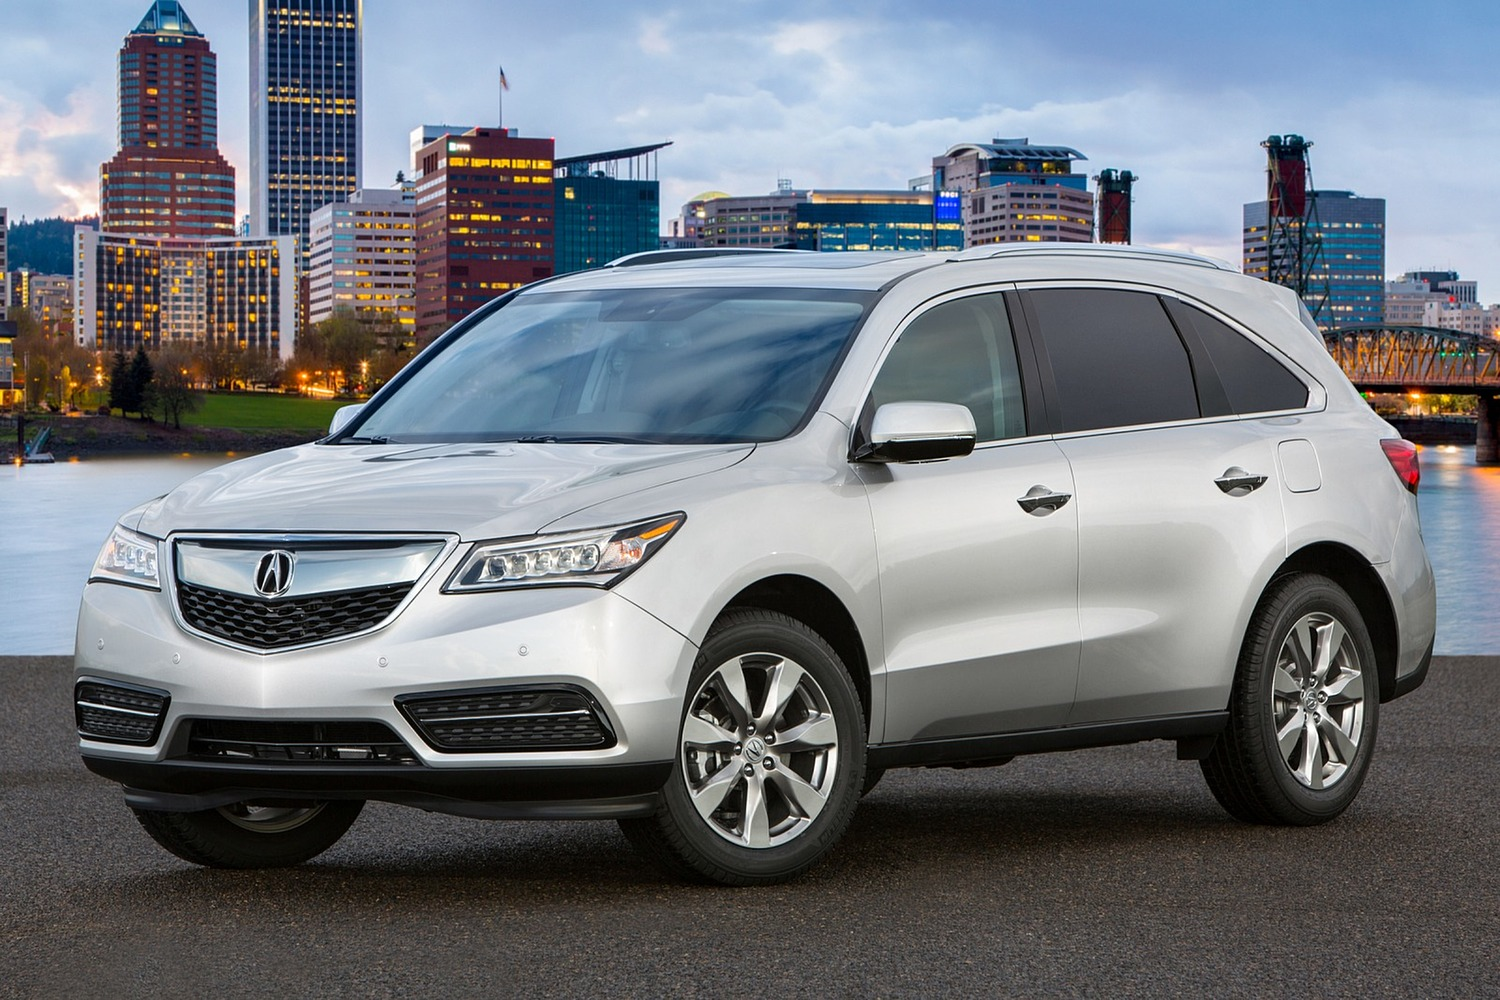 2016 Acura MDX SH-AWD w/Technology, Entertainment and AcuraWatch Plus Packages 4dr SUV Exterior